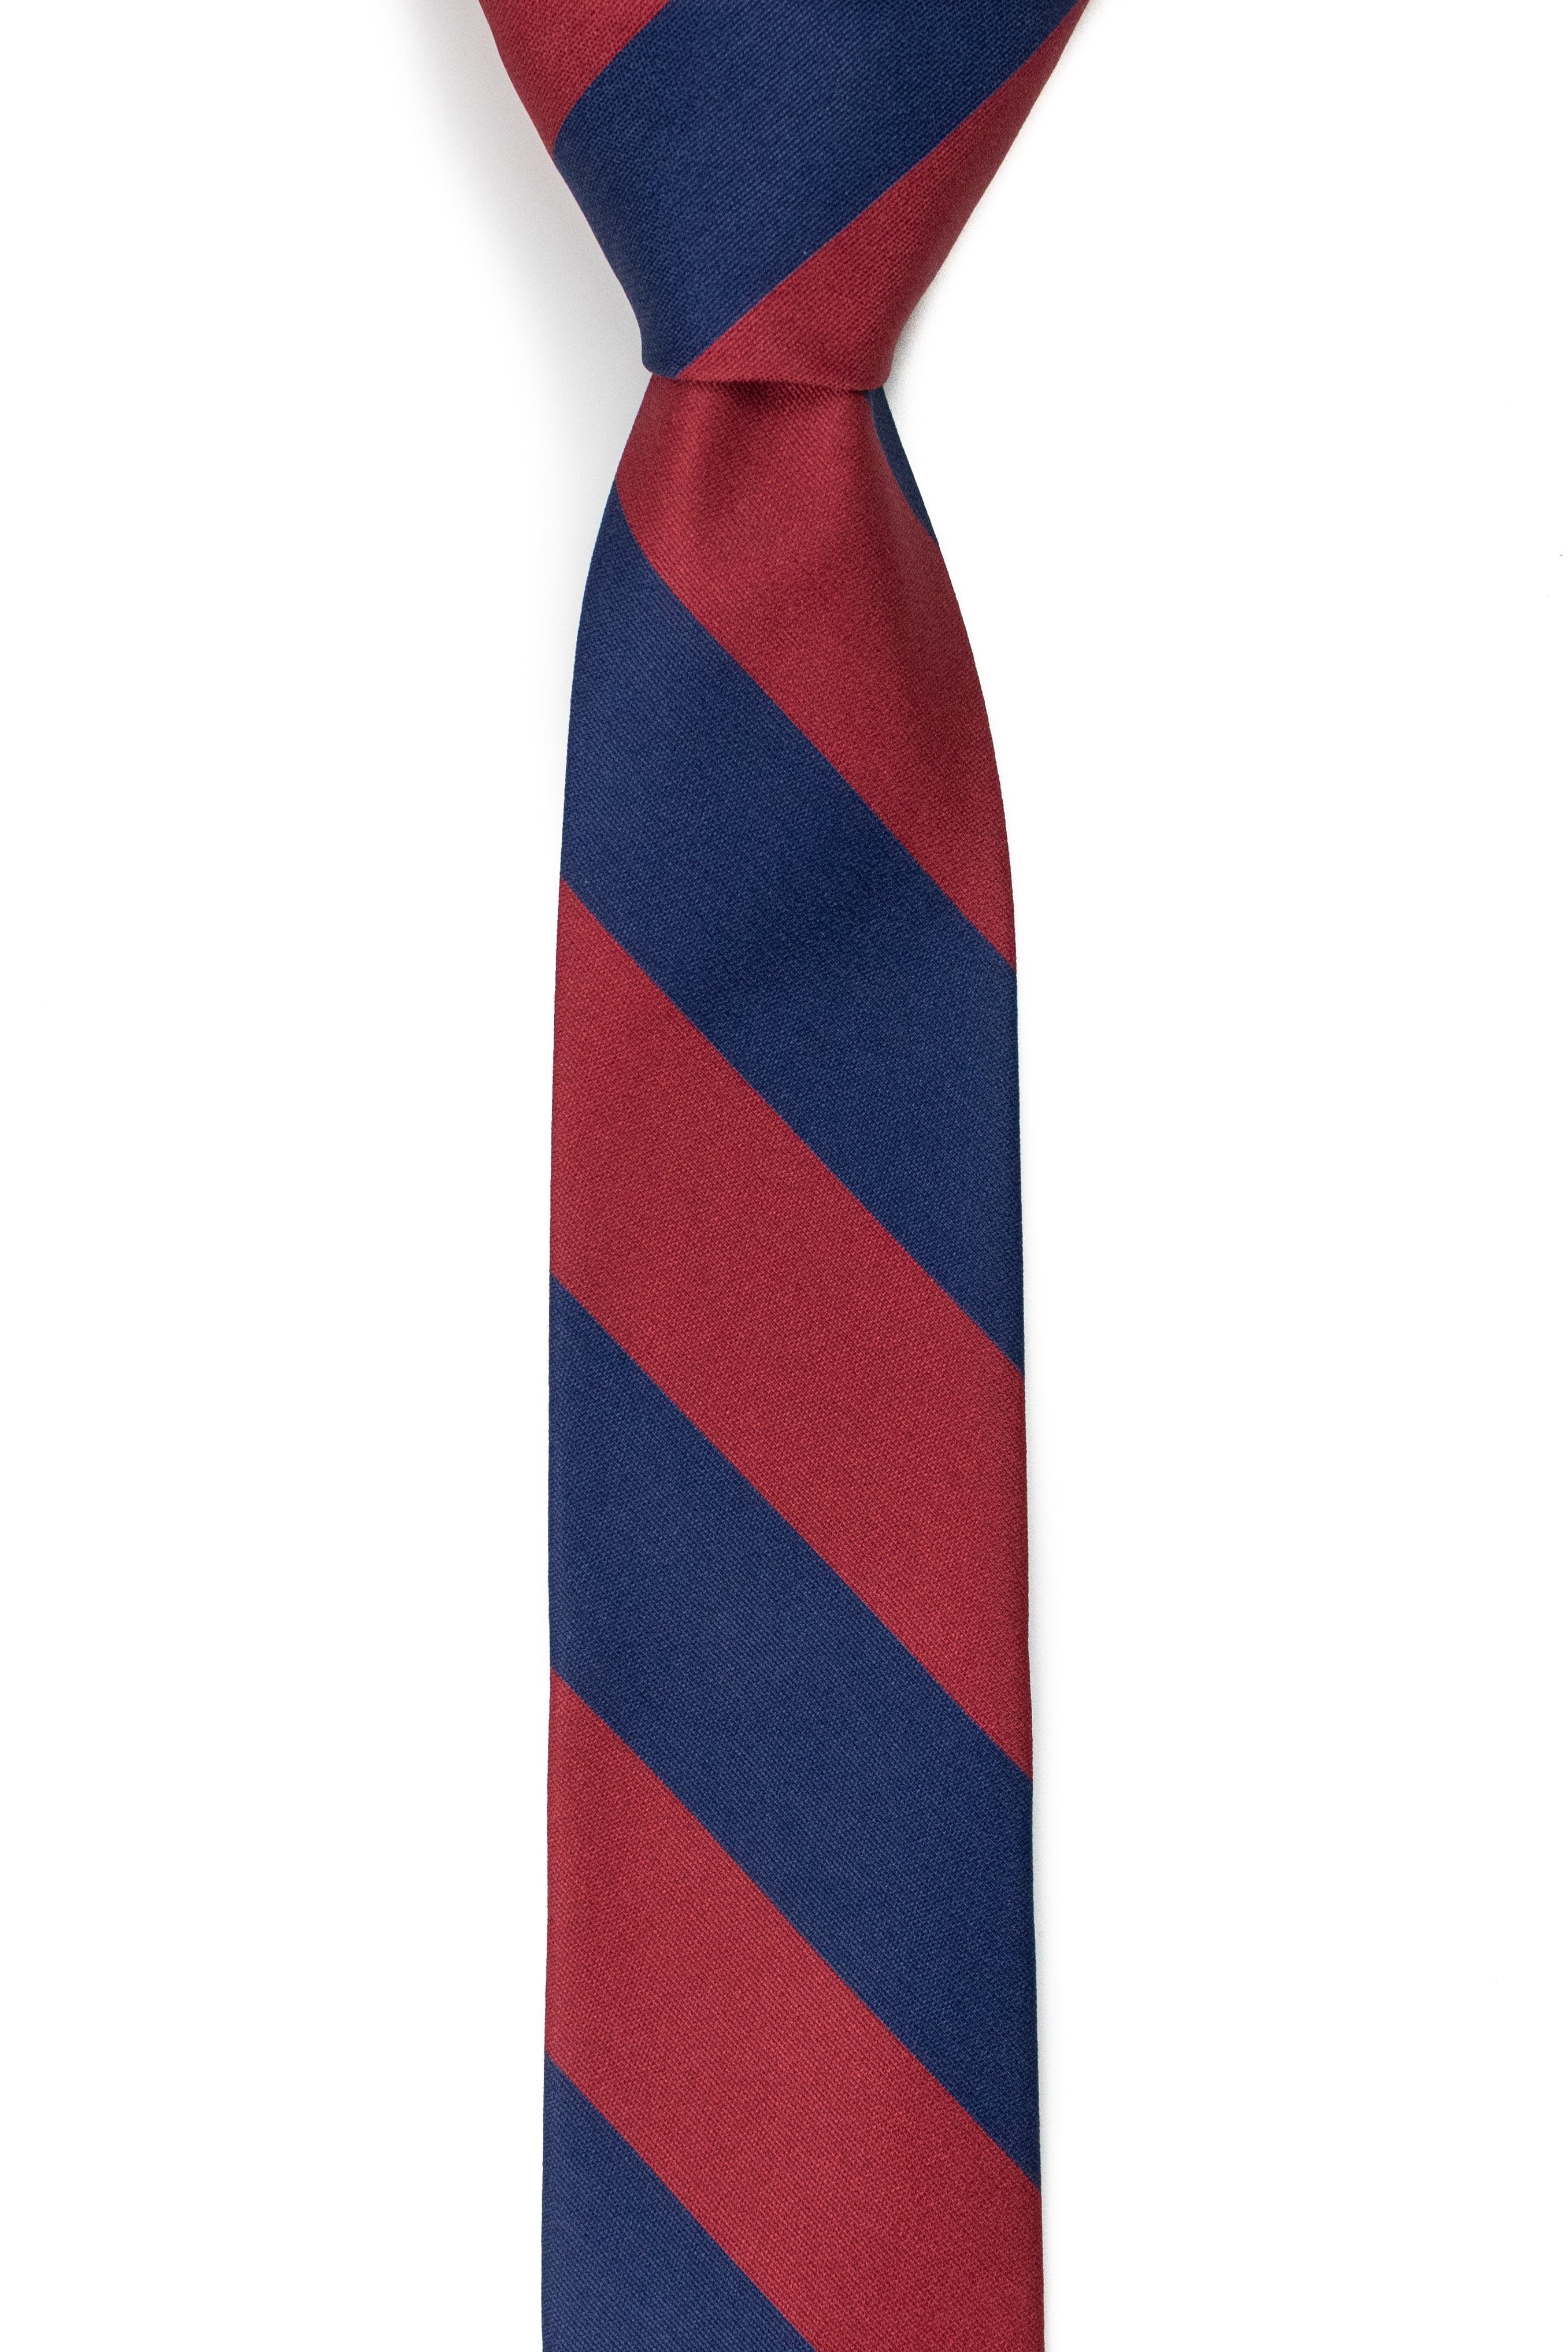 Charles - Navy and Red Striped Tie